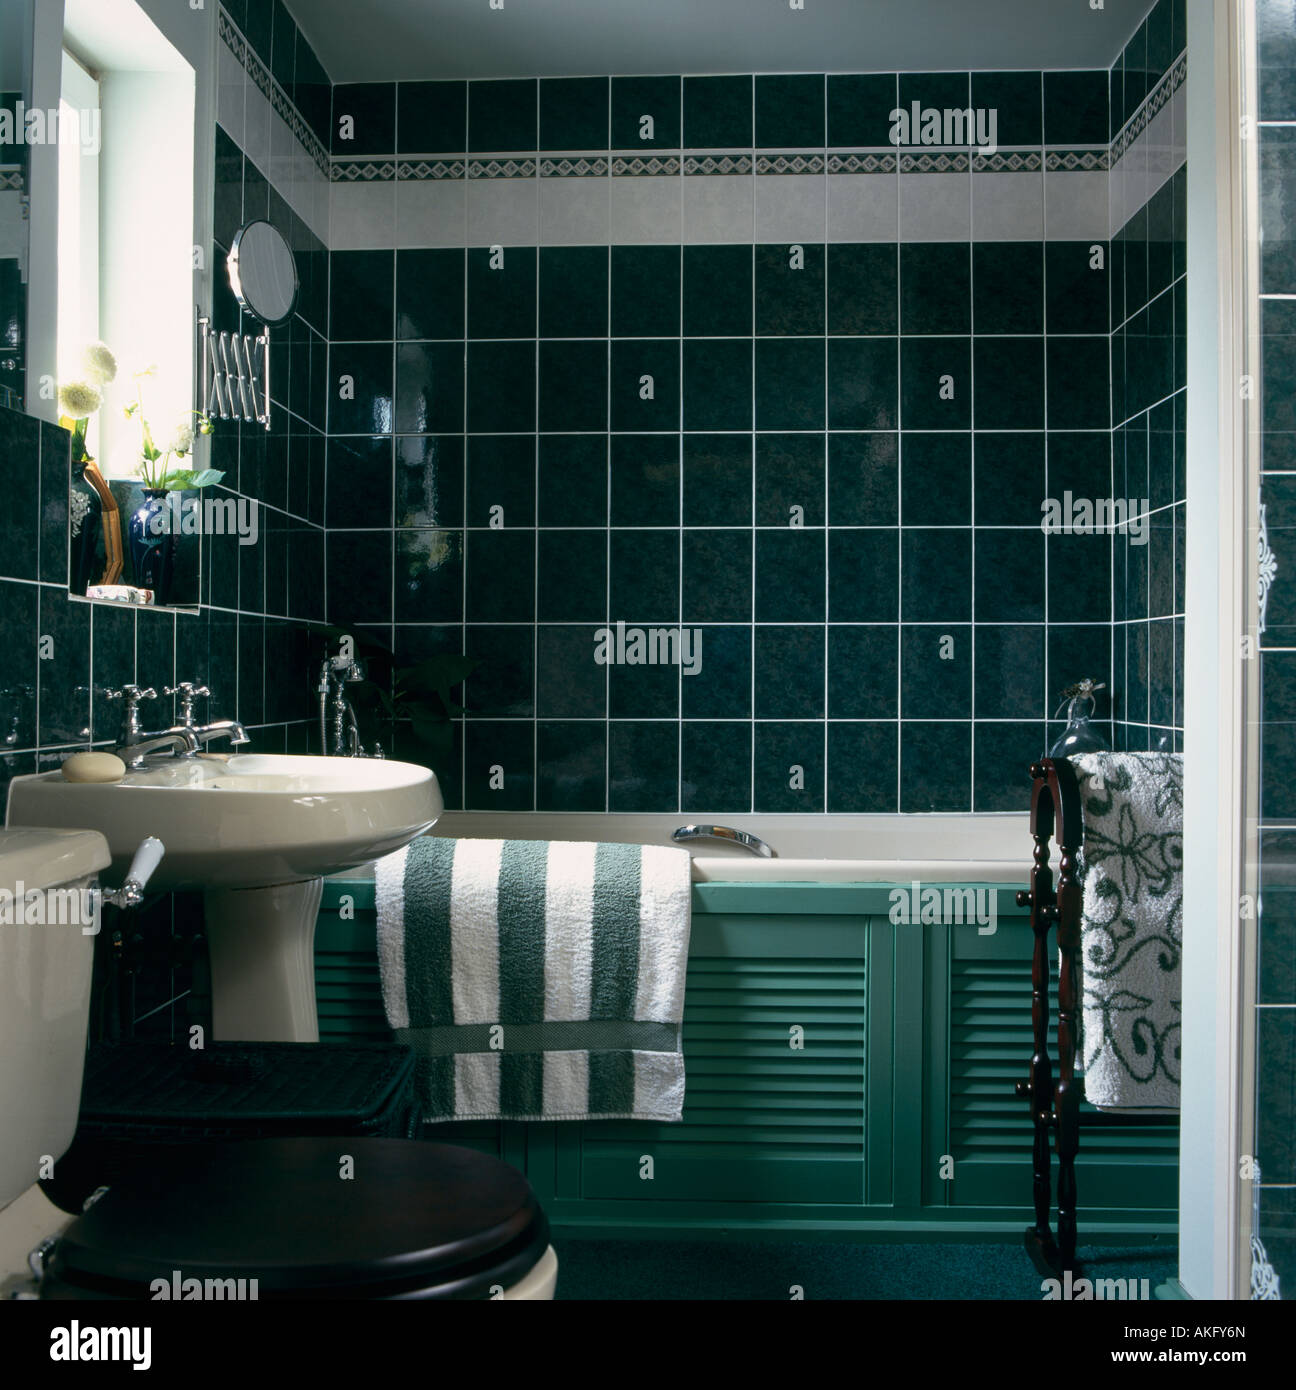 Green Striped Towel On White Bath With Green Panelling In Bathroom Stock Photo Alamy